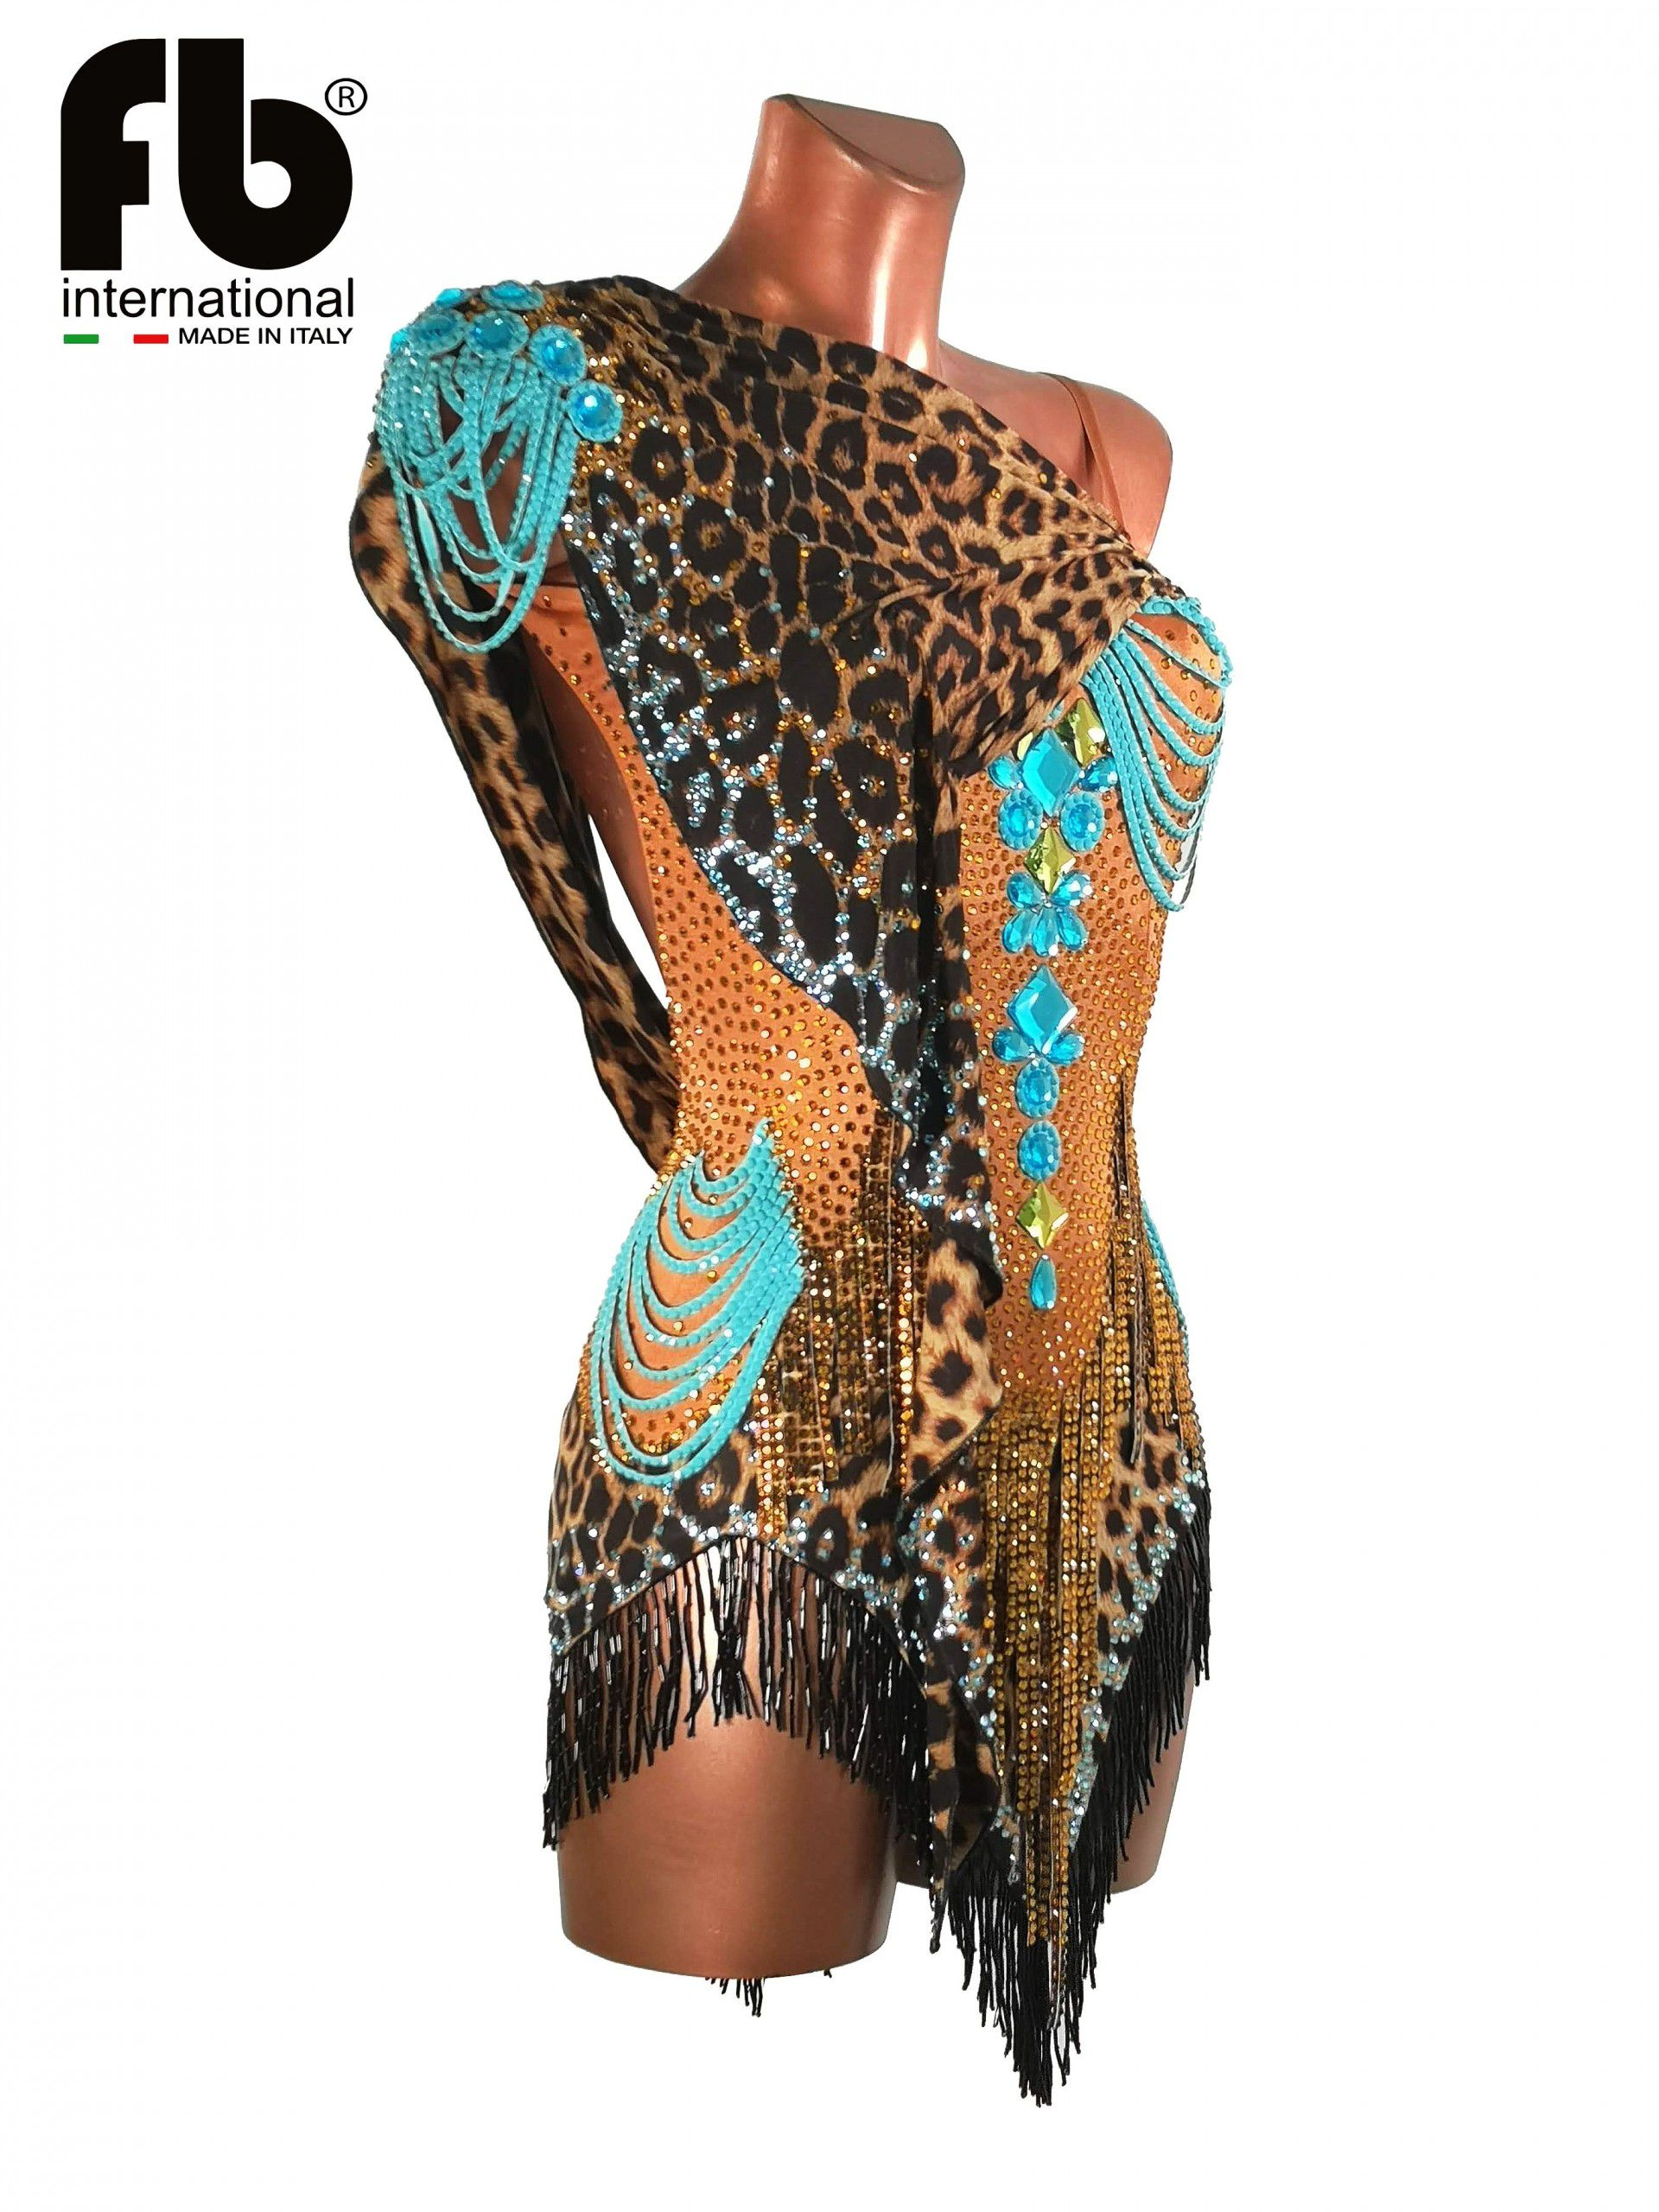 Leopard and turquoise latin dress with beads